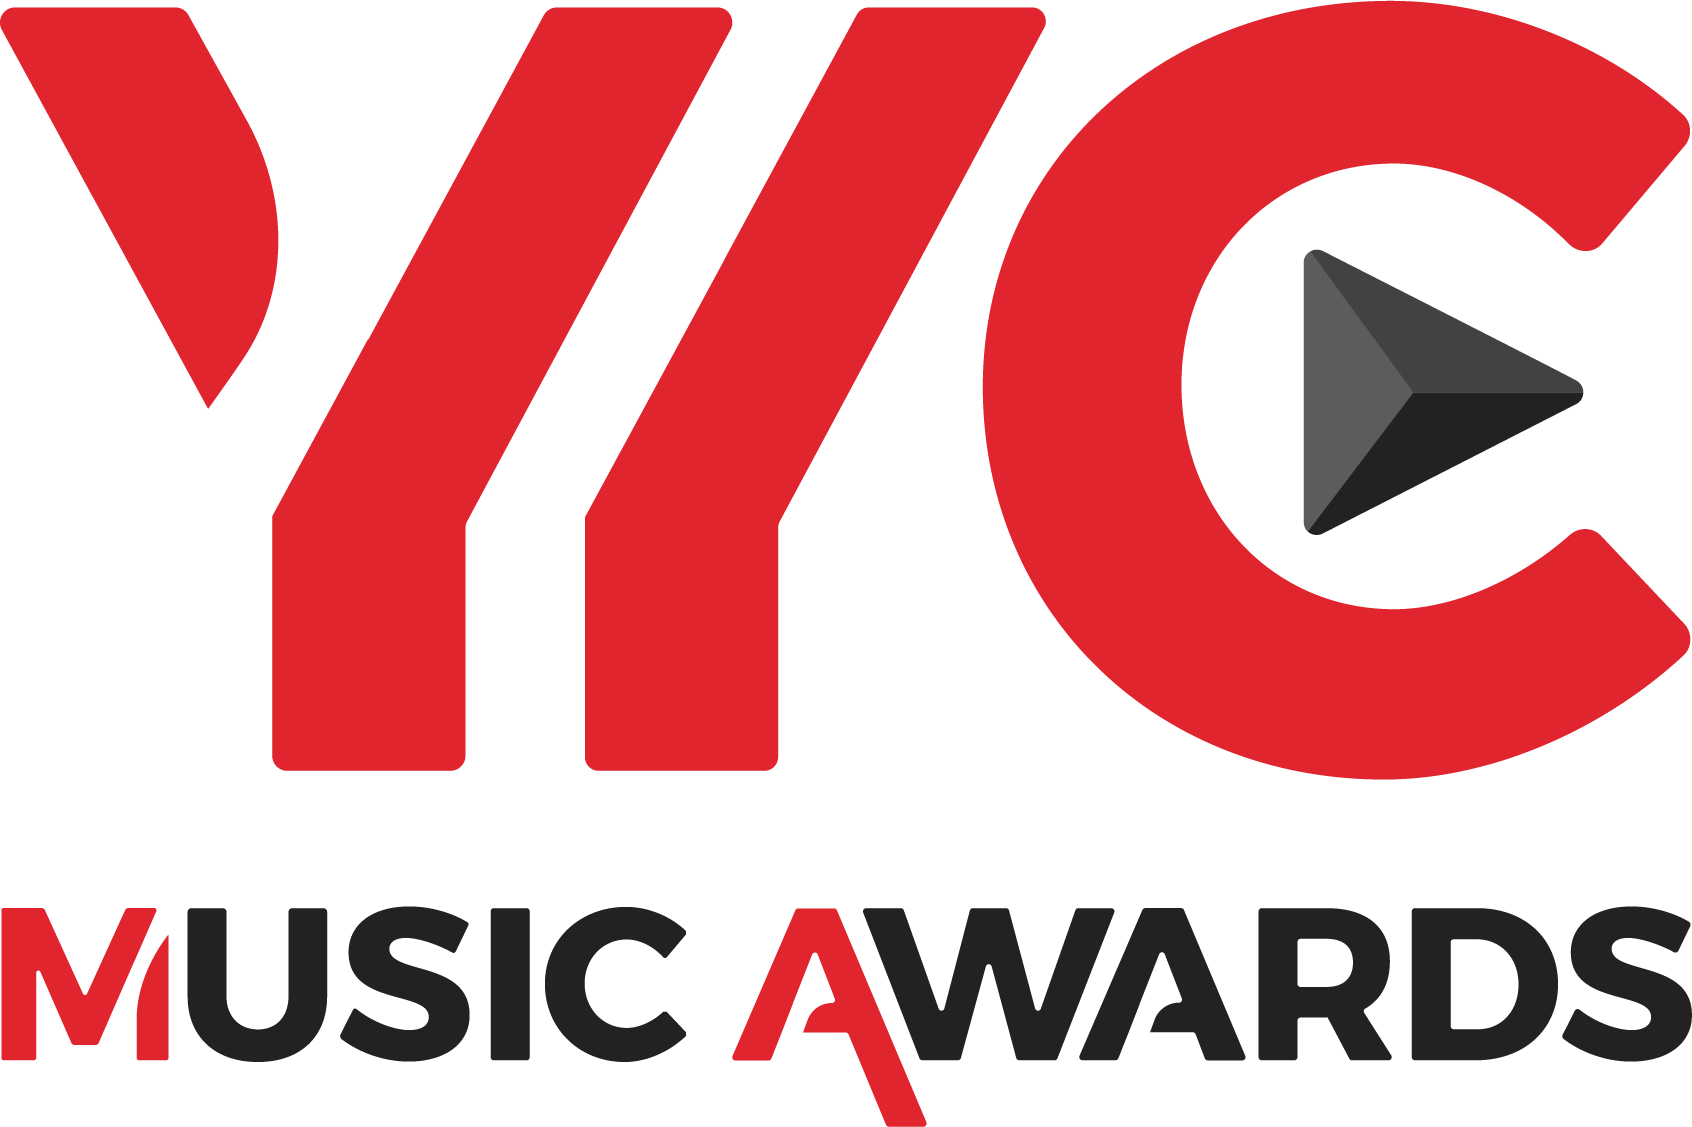 Submit an Application to Calgary's Music Awards | YYC Music